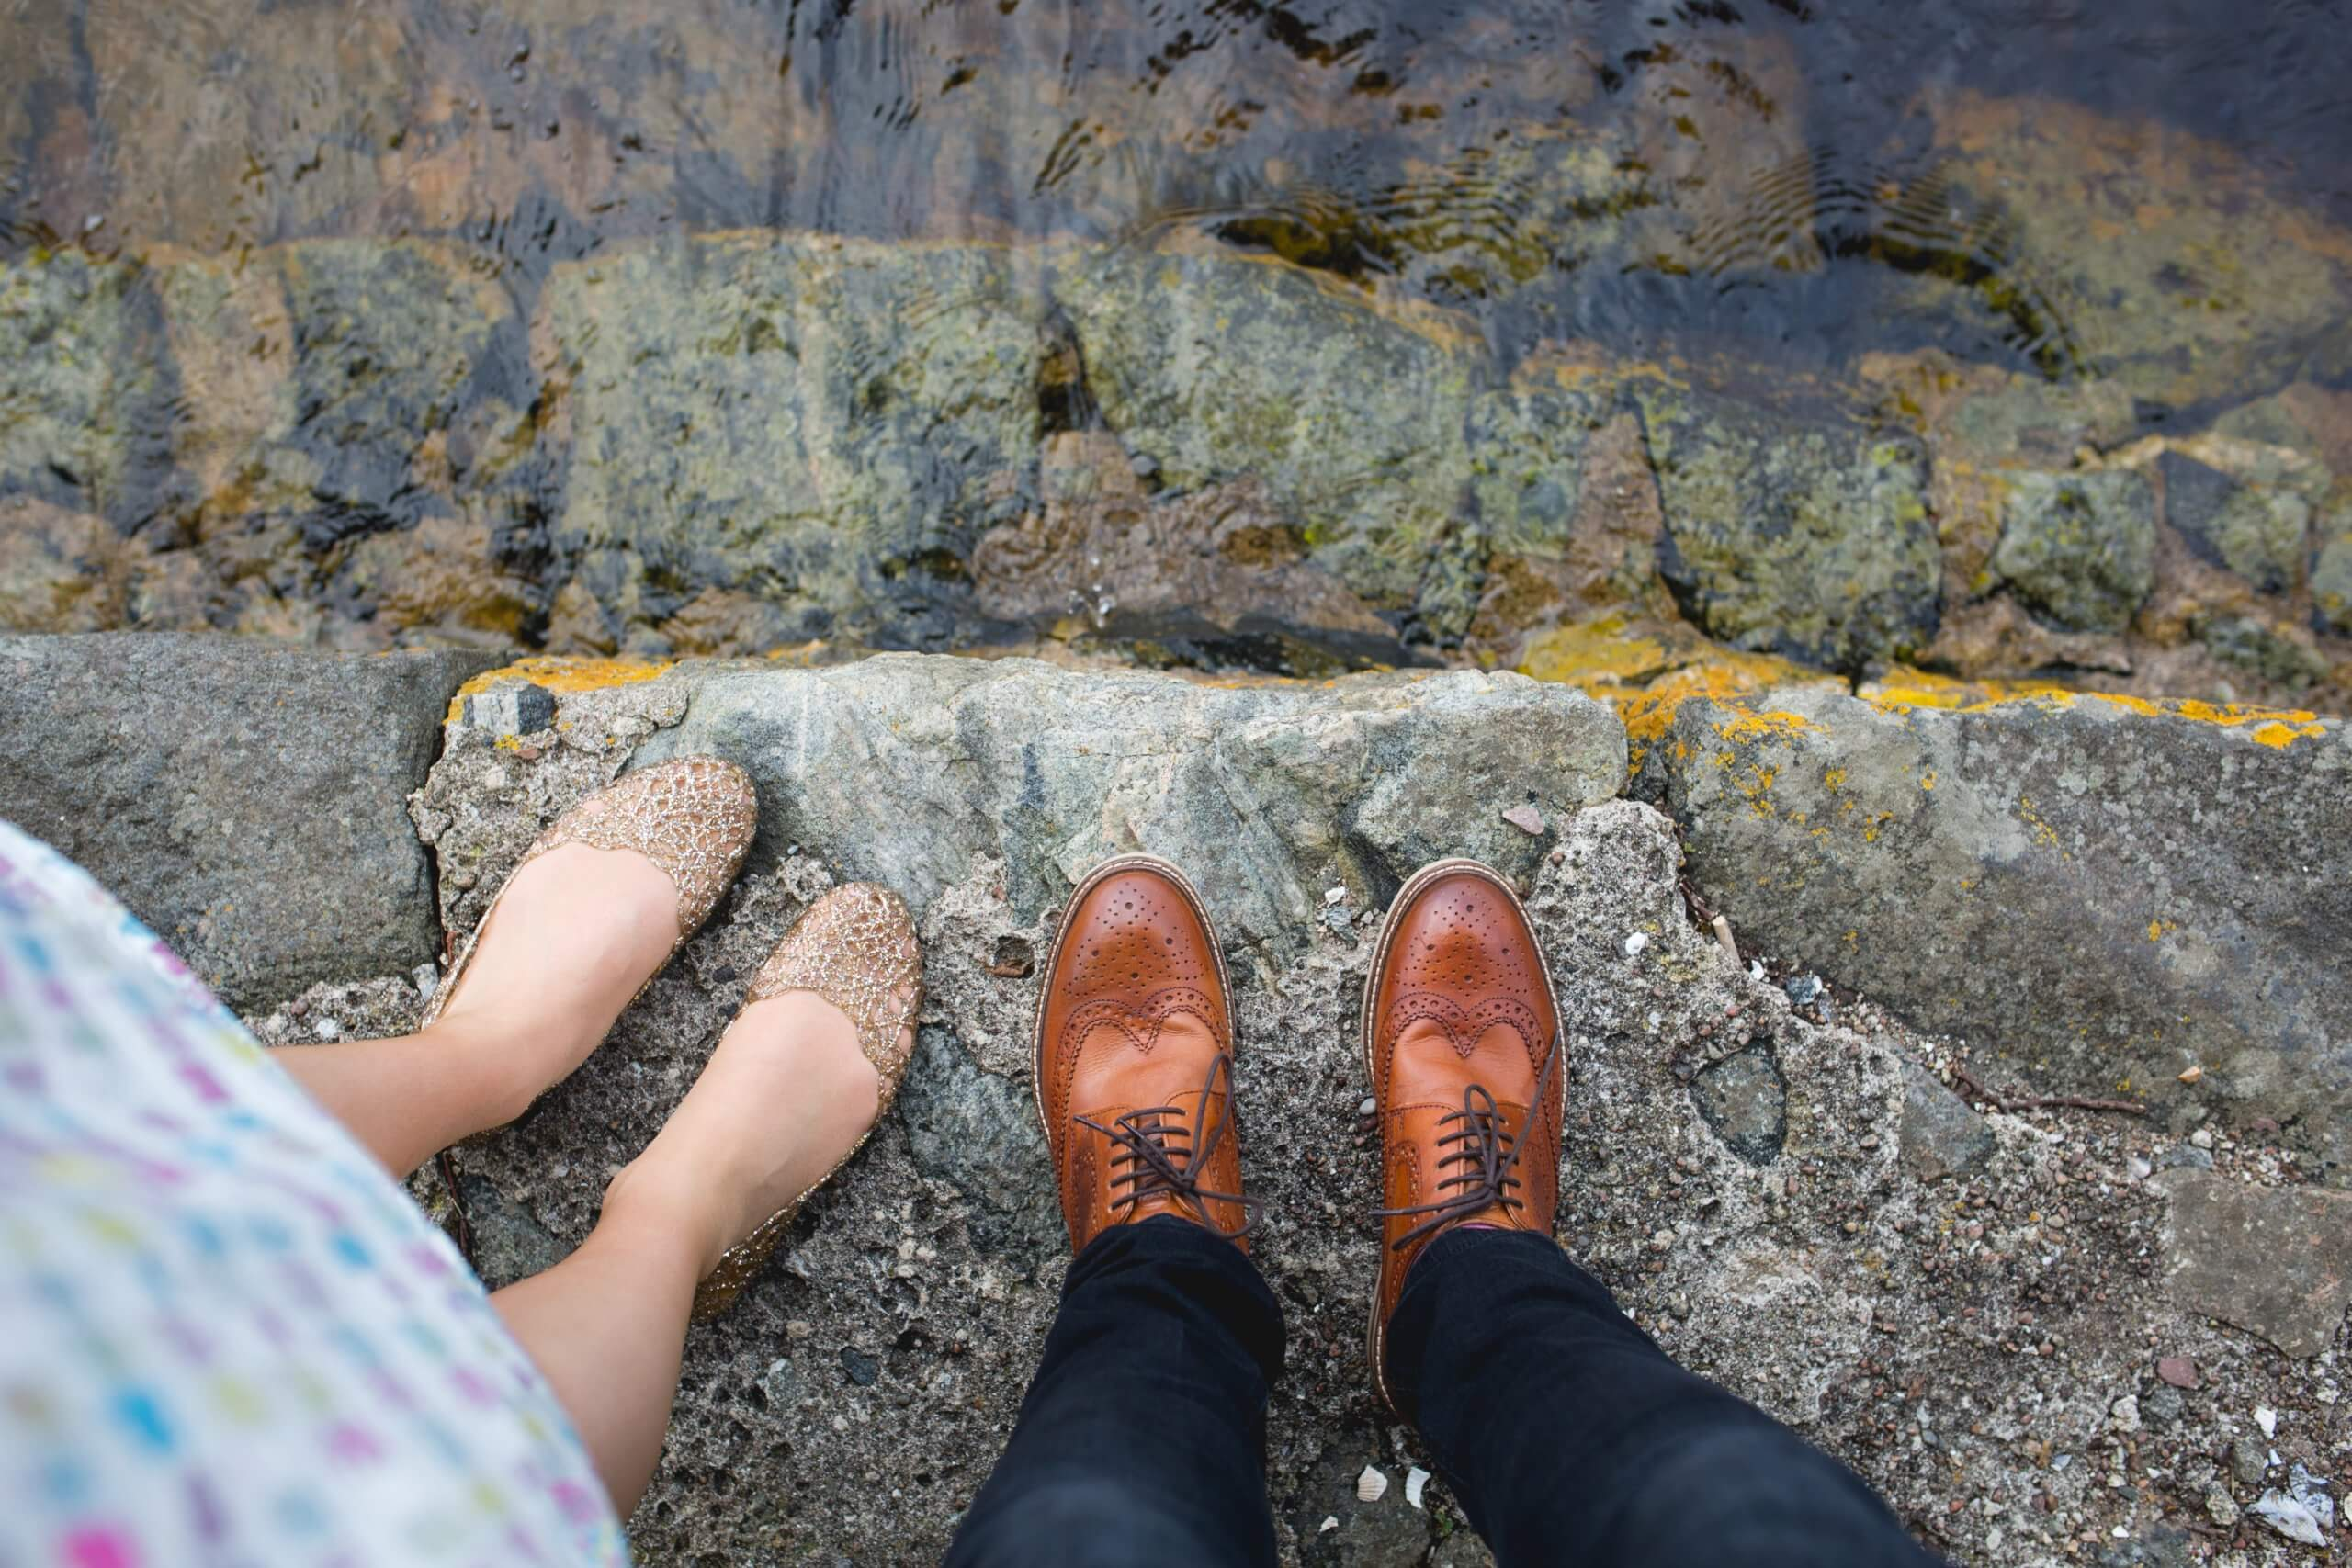 Image of 2 people standing by the waters edge